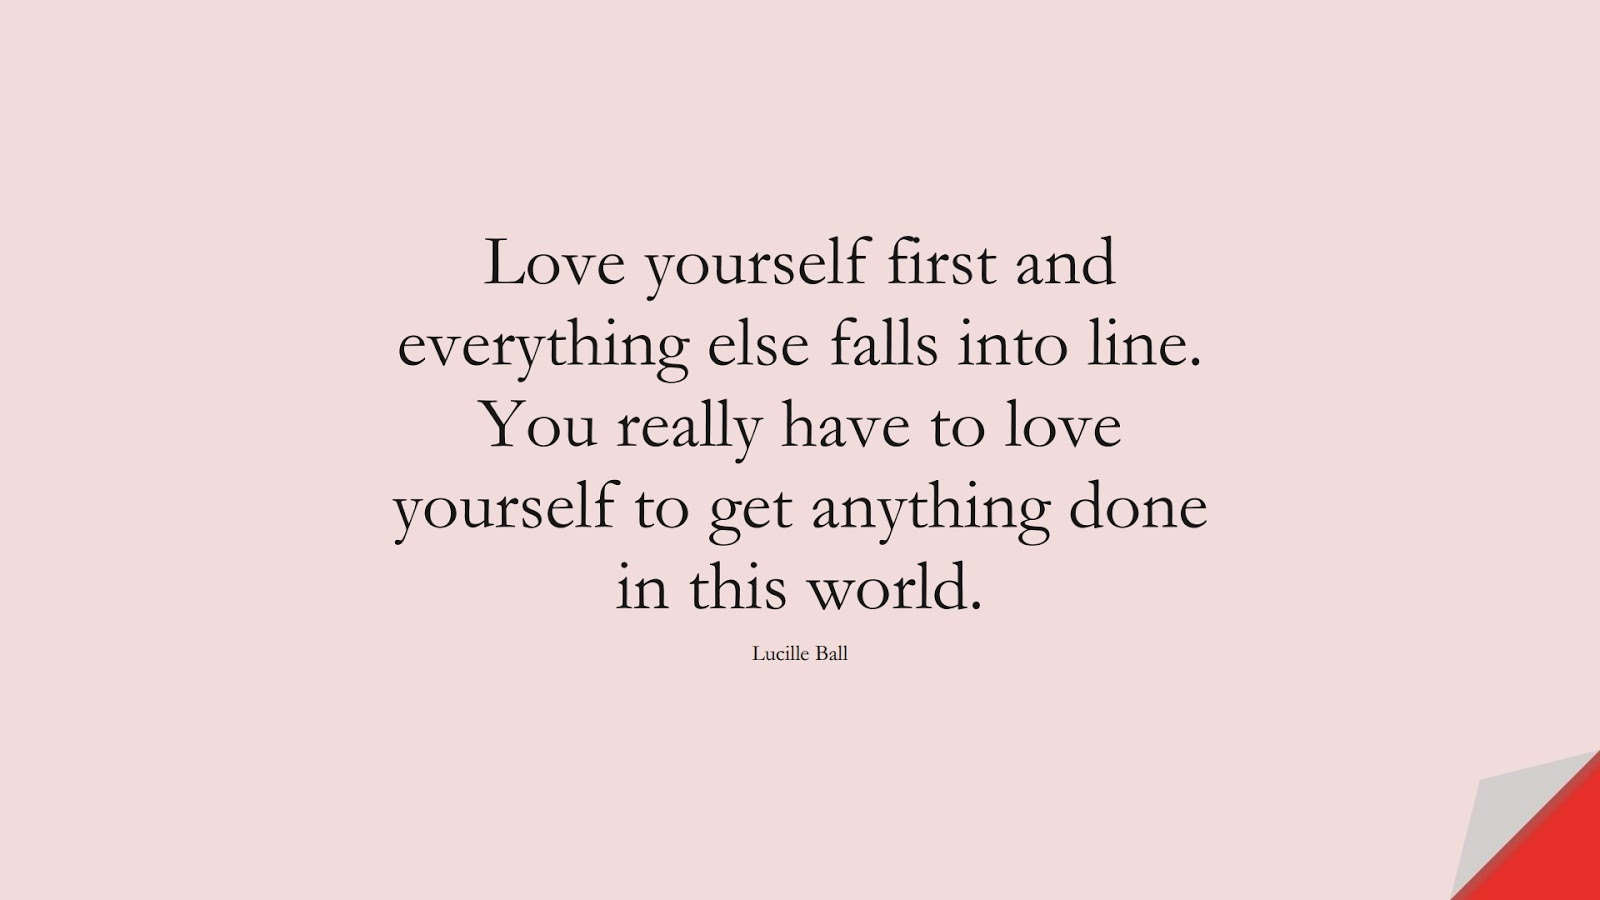 Love yourself first and everything else falls into line. You really have to love yourself to get anything done in this world. (Lucille Ball);  #LoveQuotes